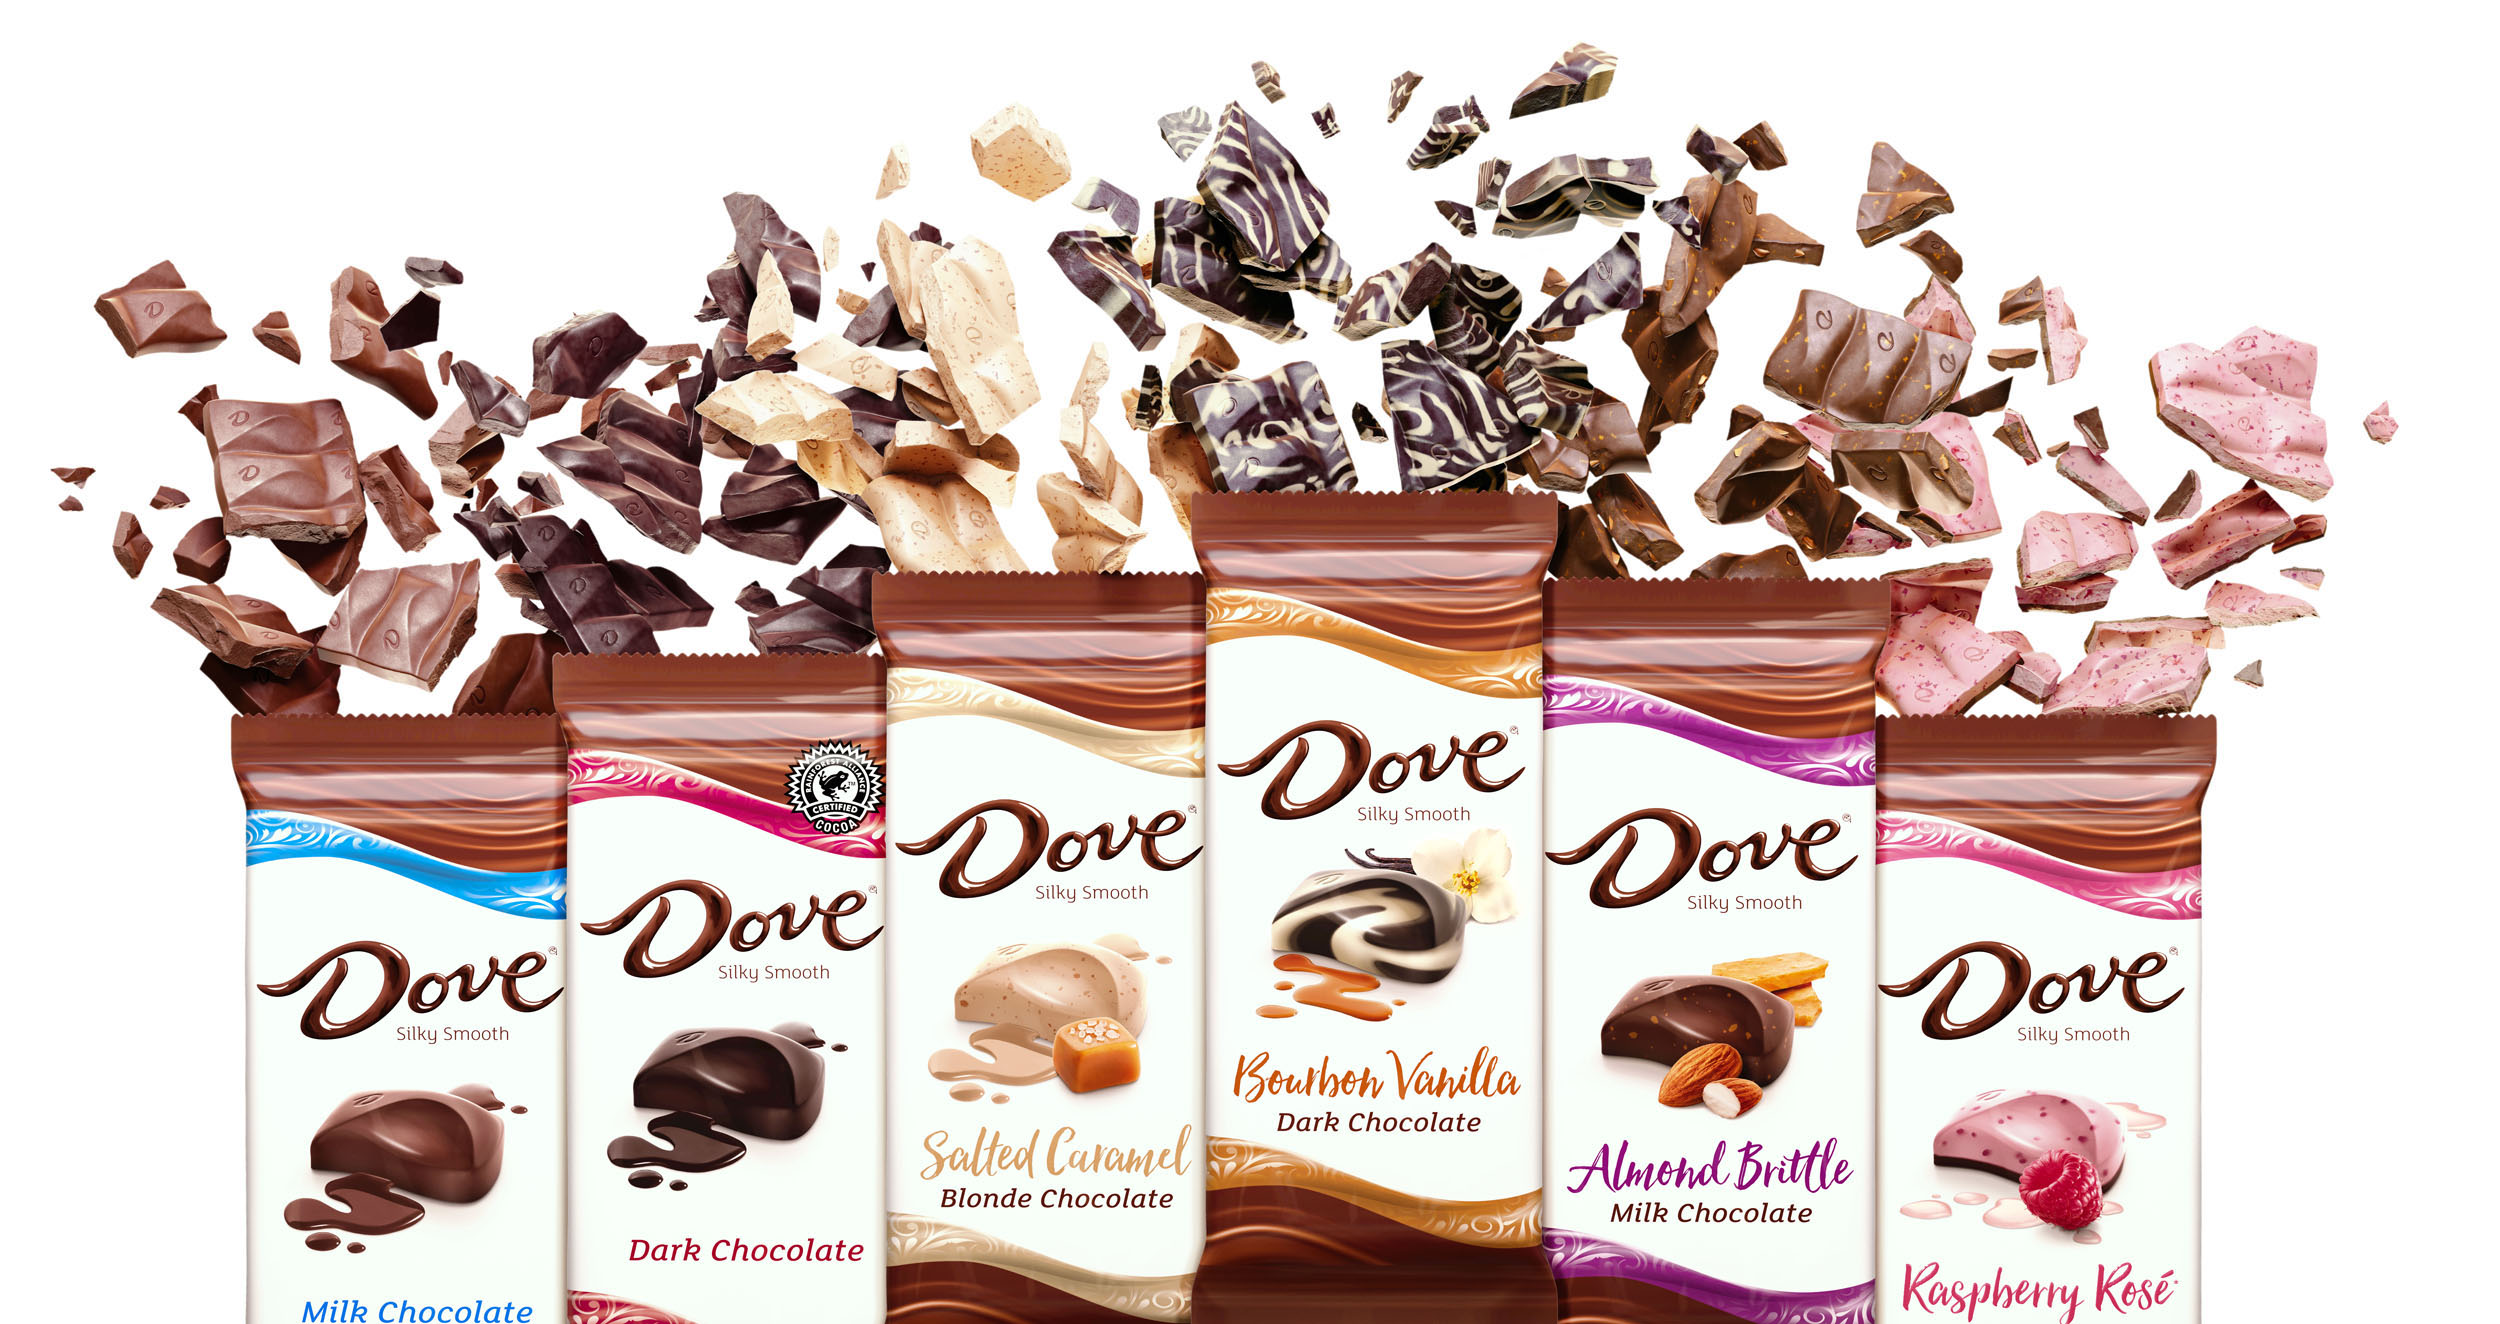 BOOM CGI Creates the Bold New DOVE Chocolate Experience We All ...